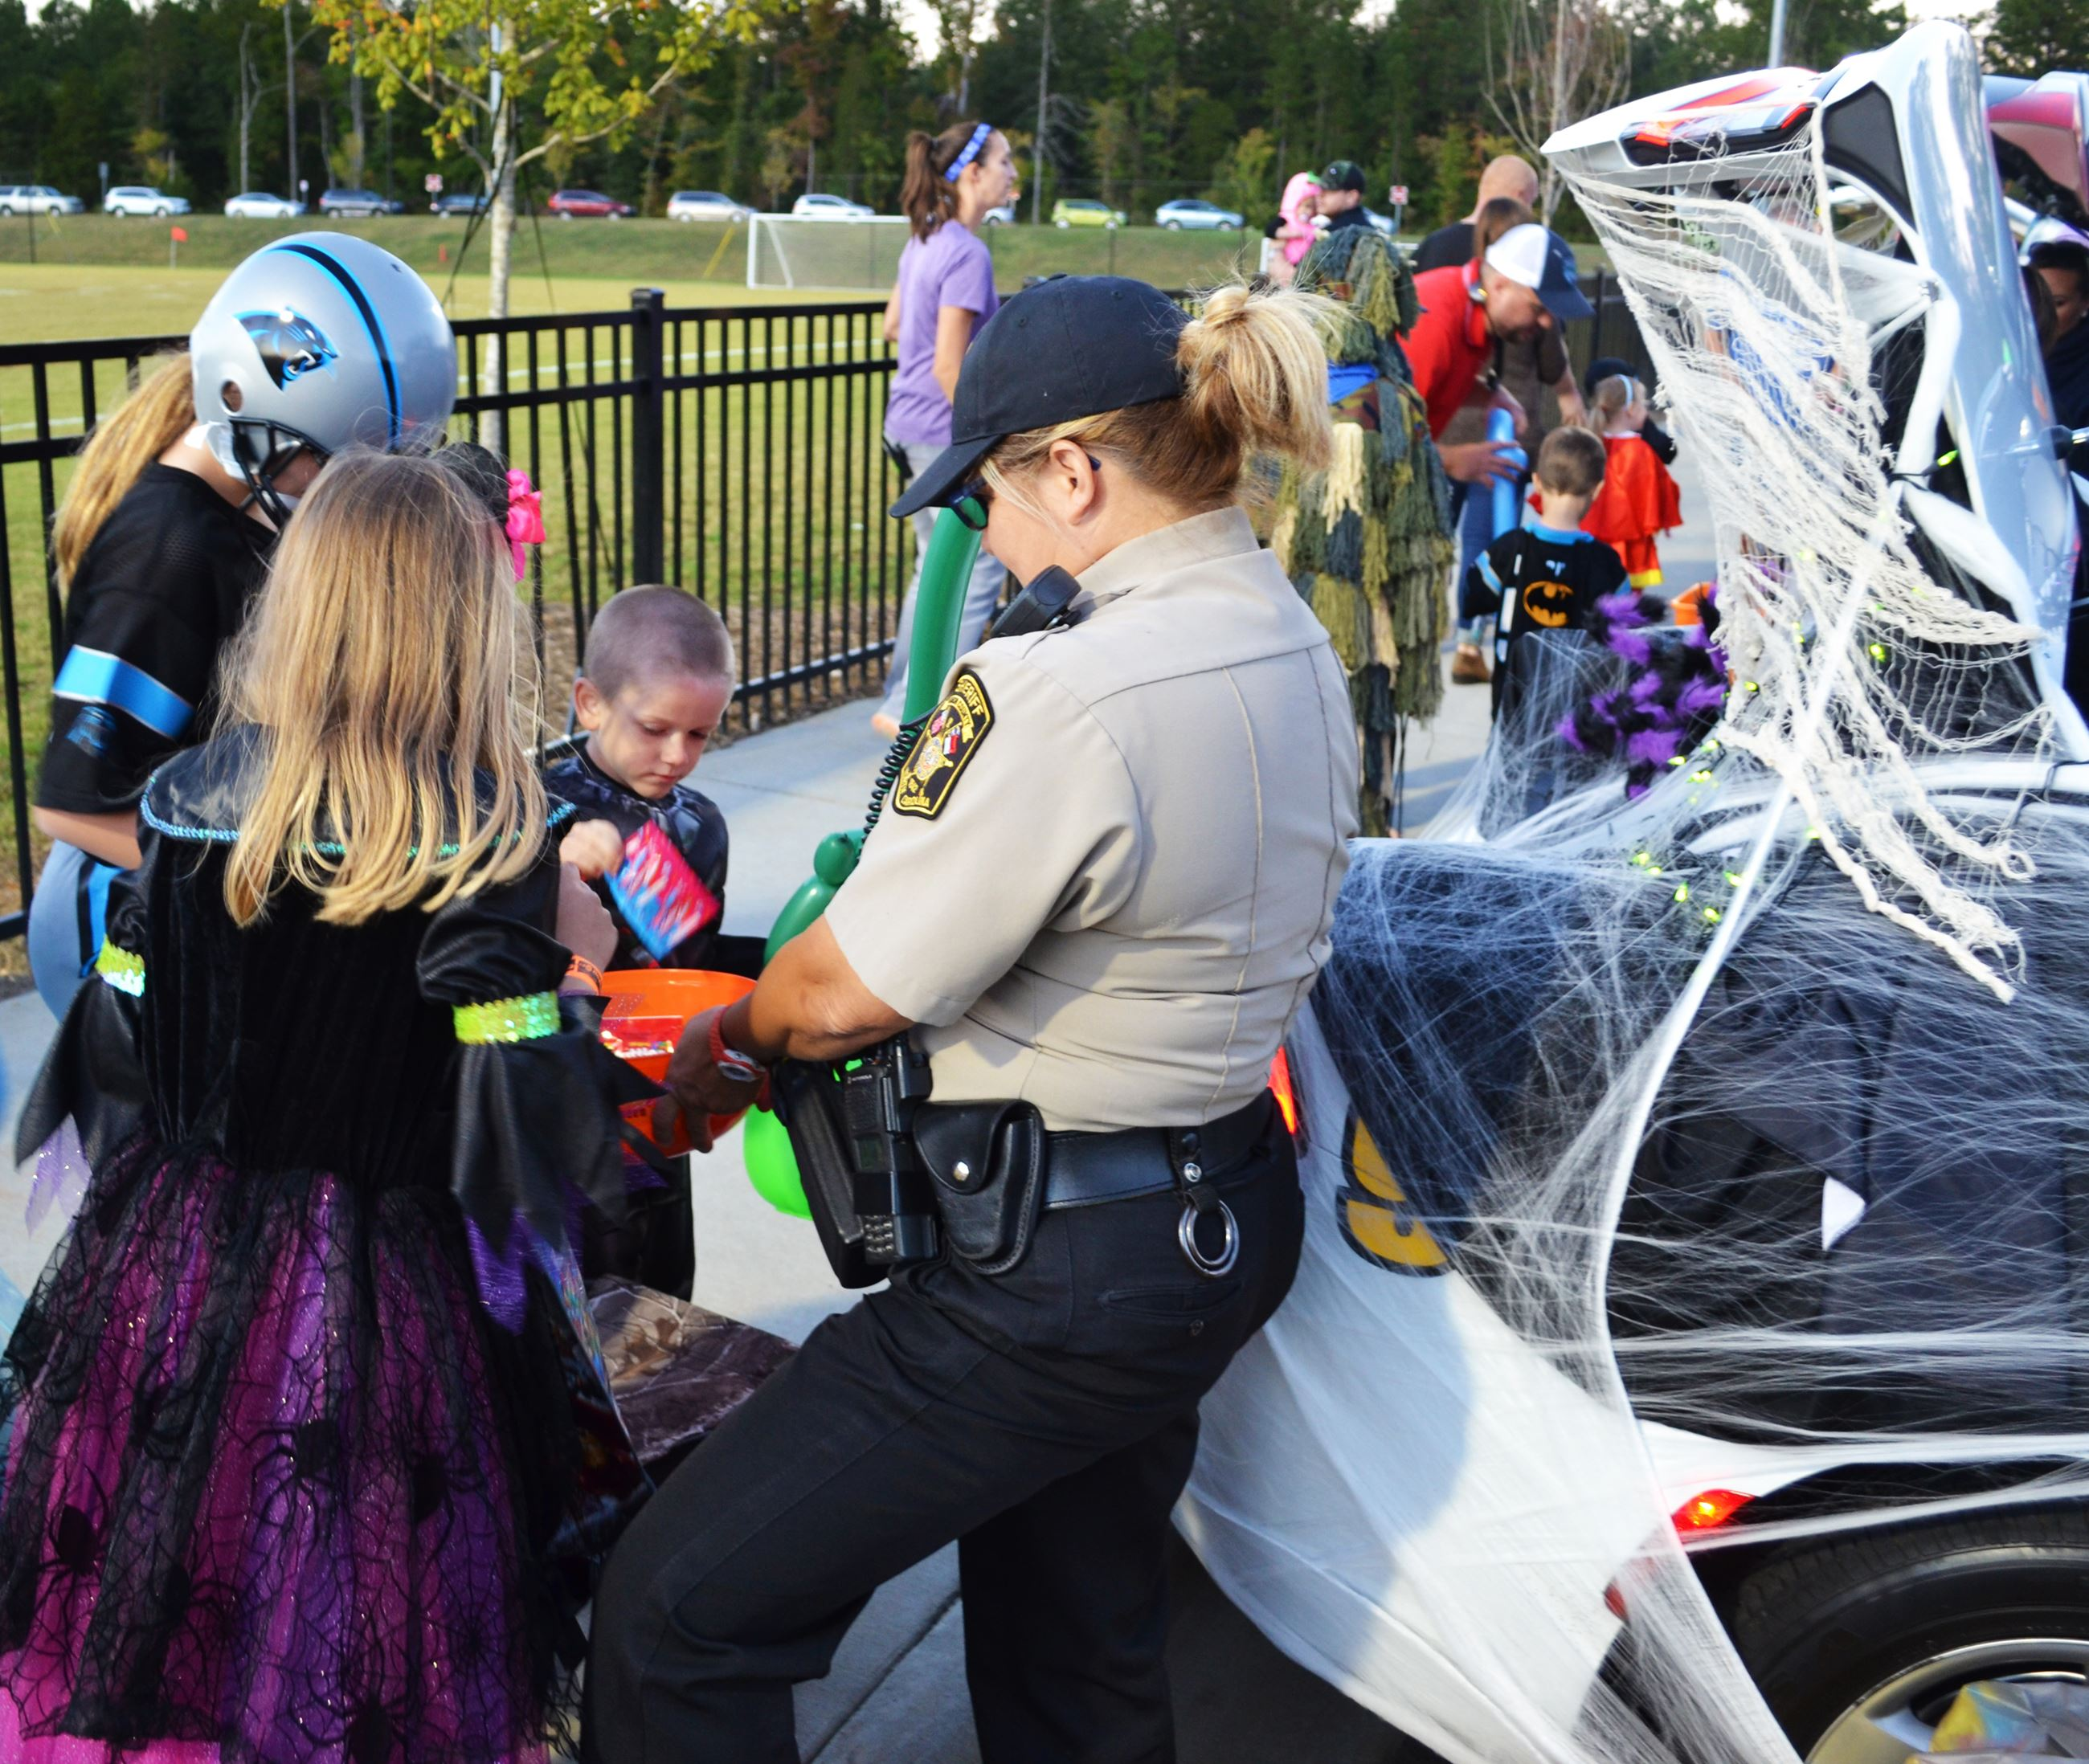 A Sheriff's deputy gives candy to children.